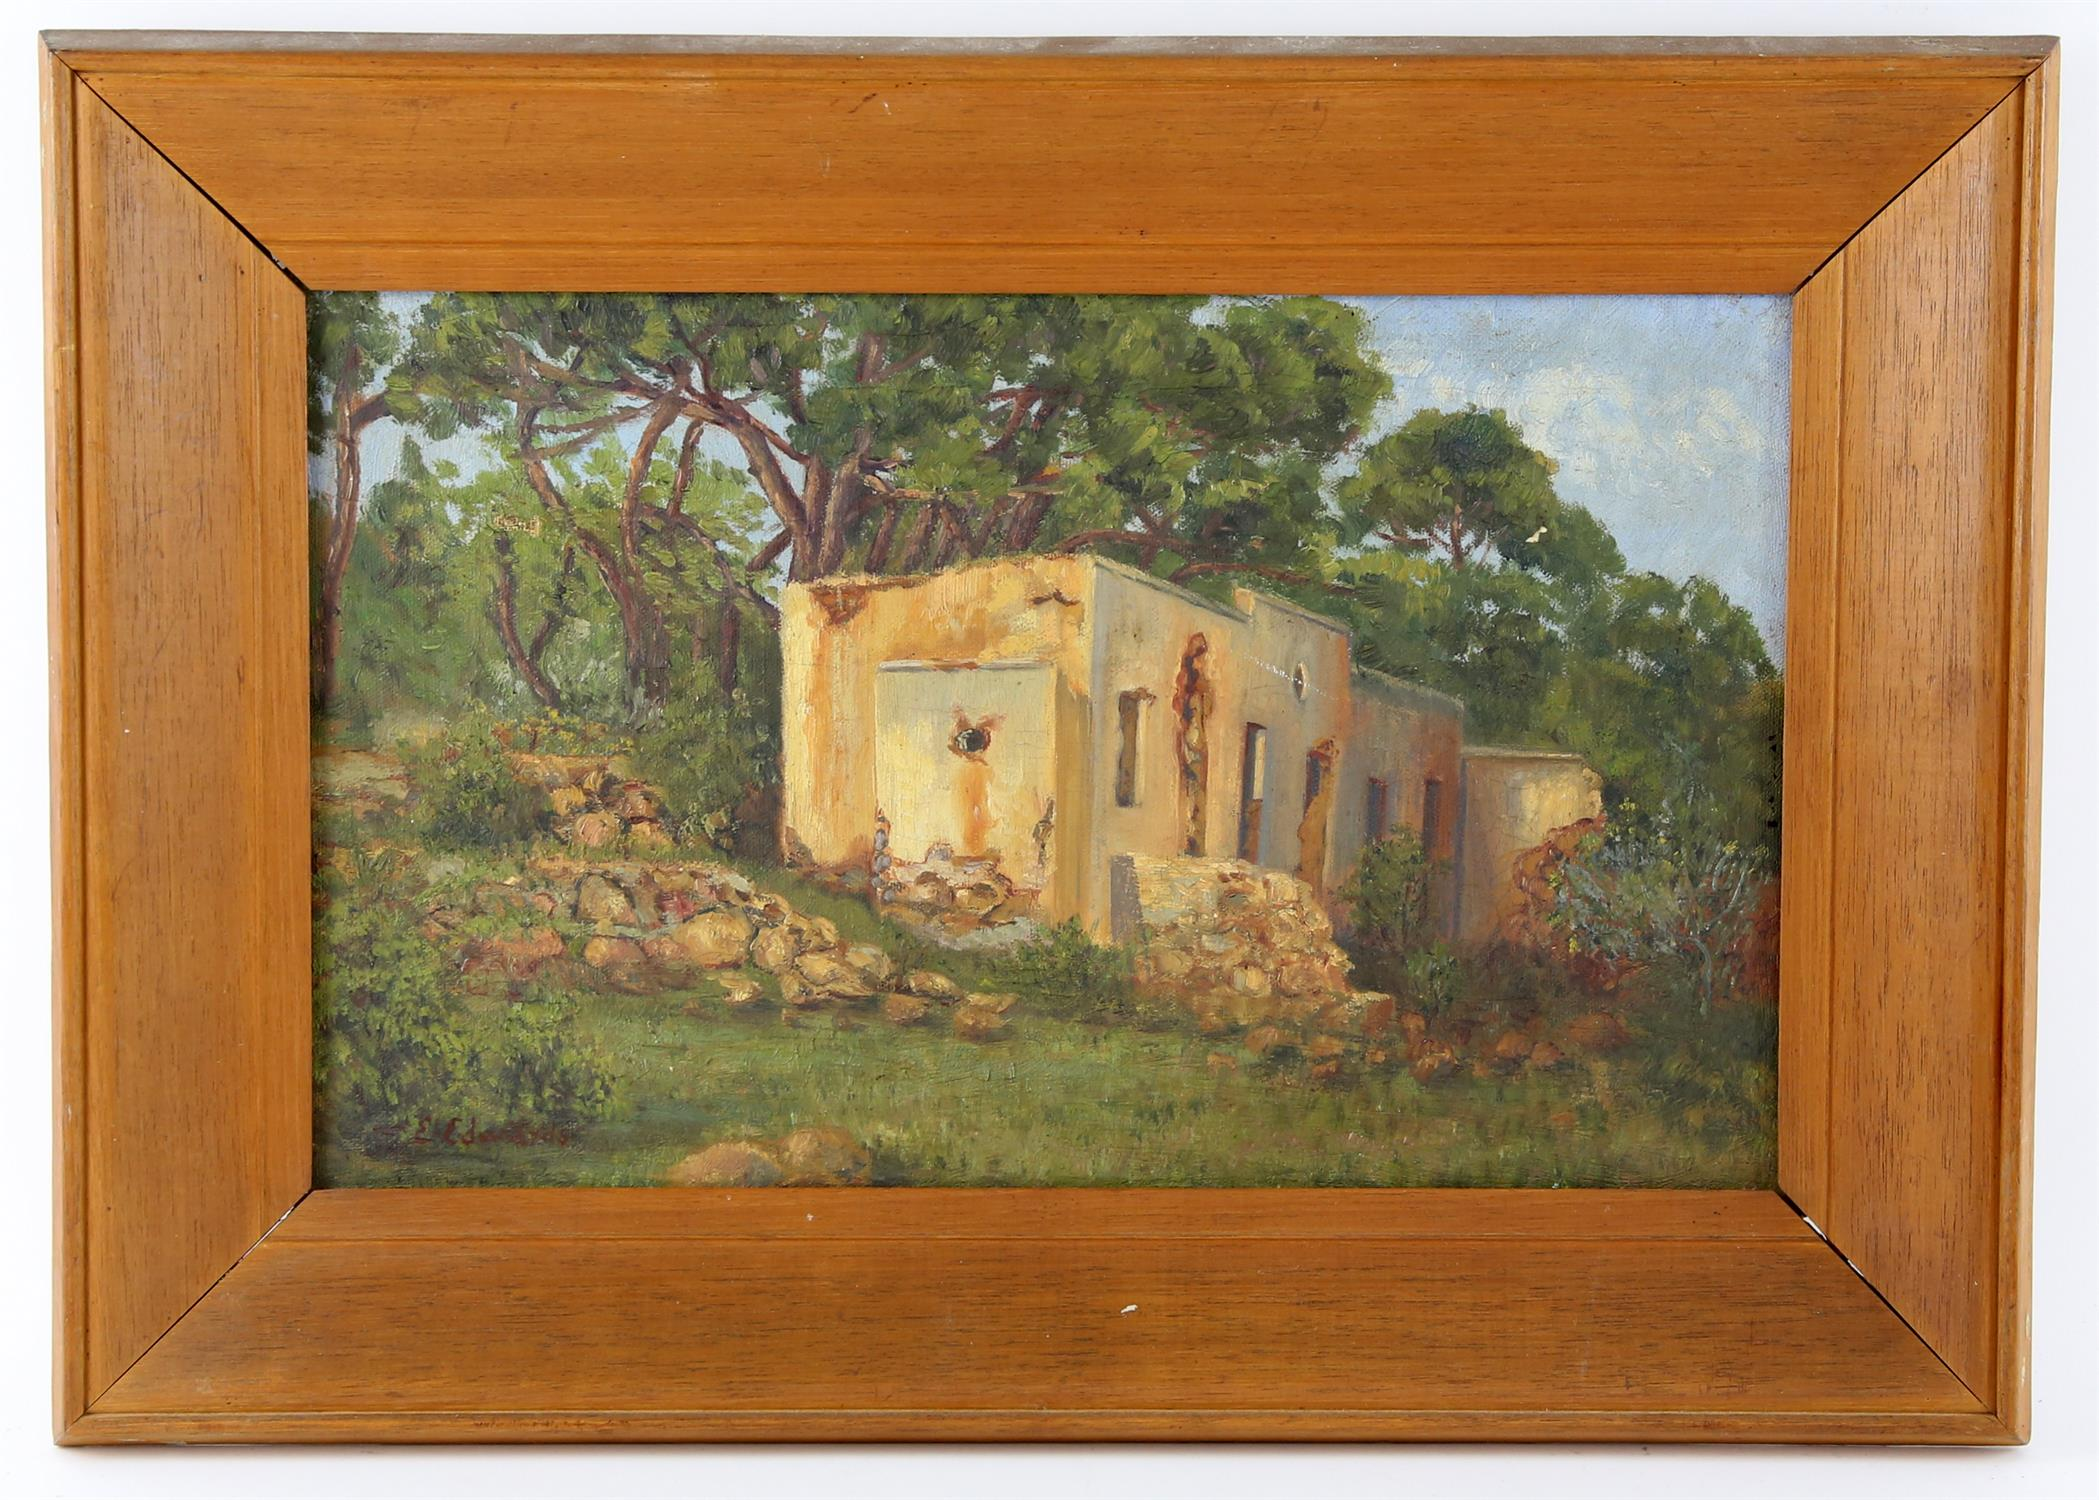 E Edwards, Ruined building in a South African woodland, oil on canvas, signed lower left, 24 x 39cm - Image 2 of 2